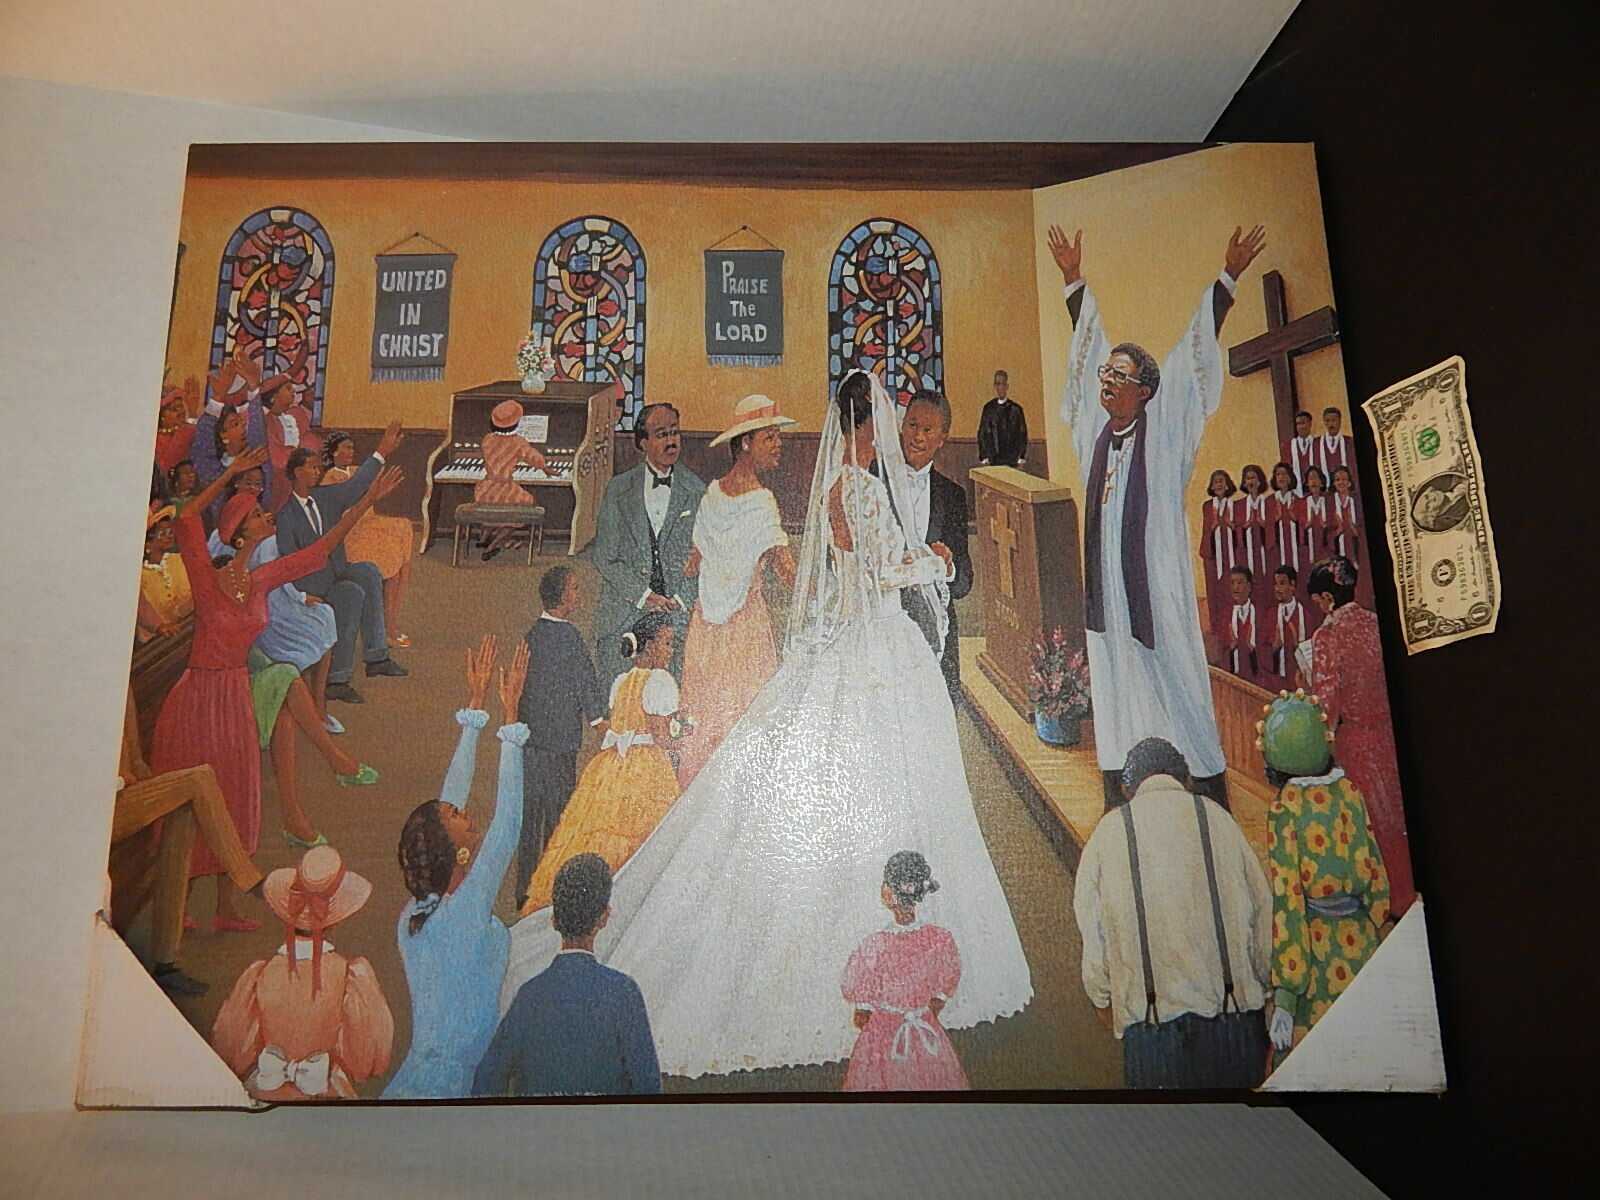 African American Wedding Church Christian Wall Picture 28x22 Large Art Print - $24.99